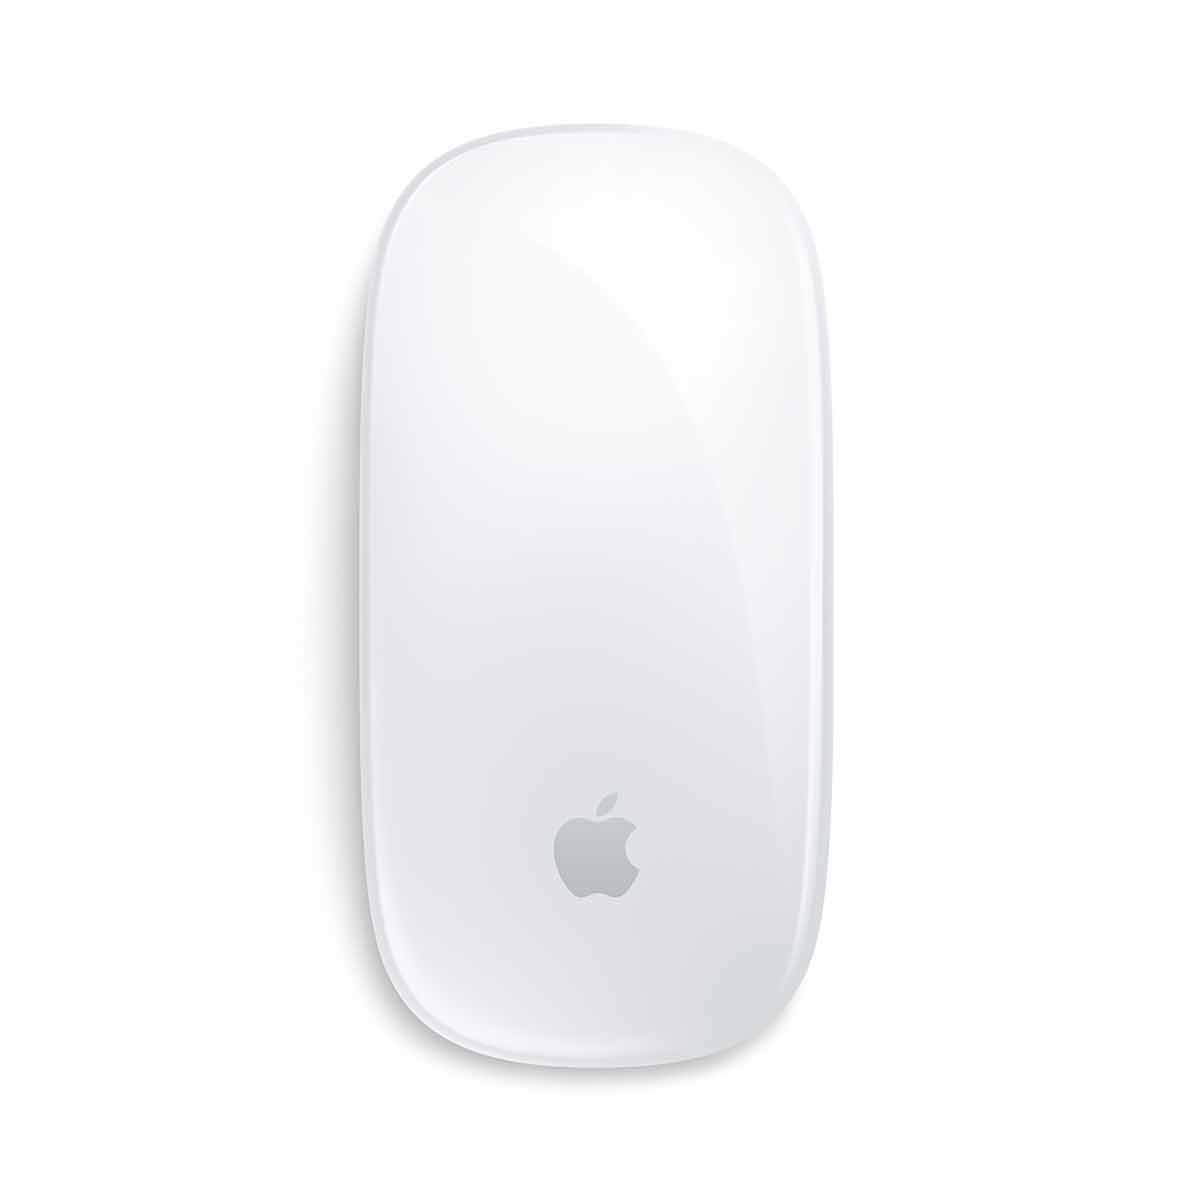 Image of Apple Magic Mouse 2, Silver